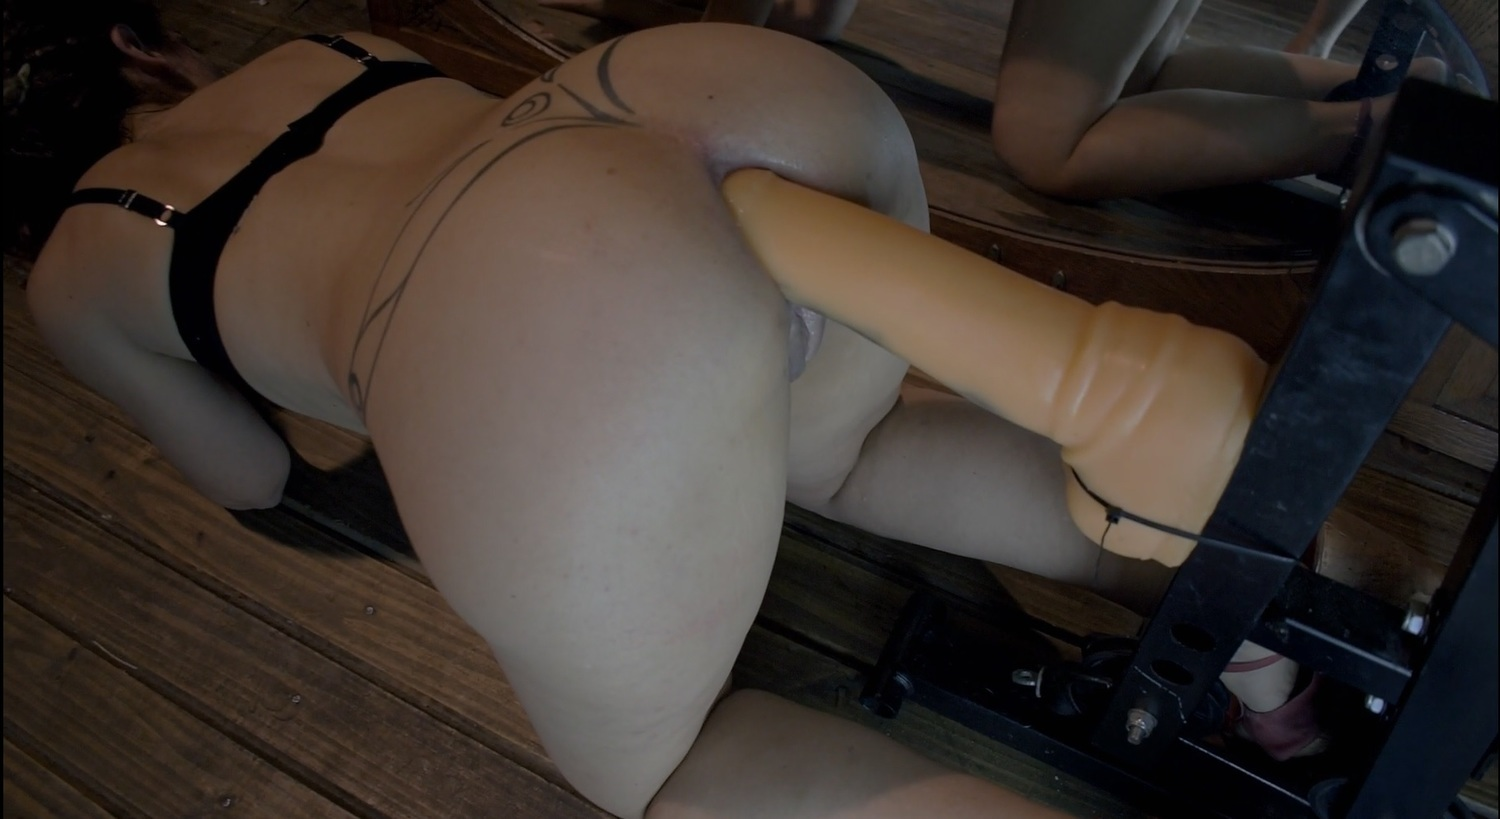 Anally chick fat free fucked video